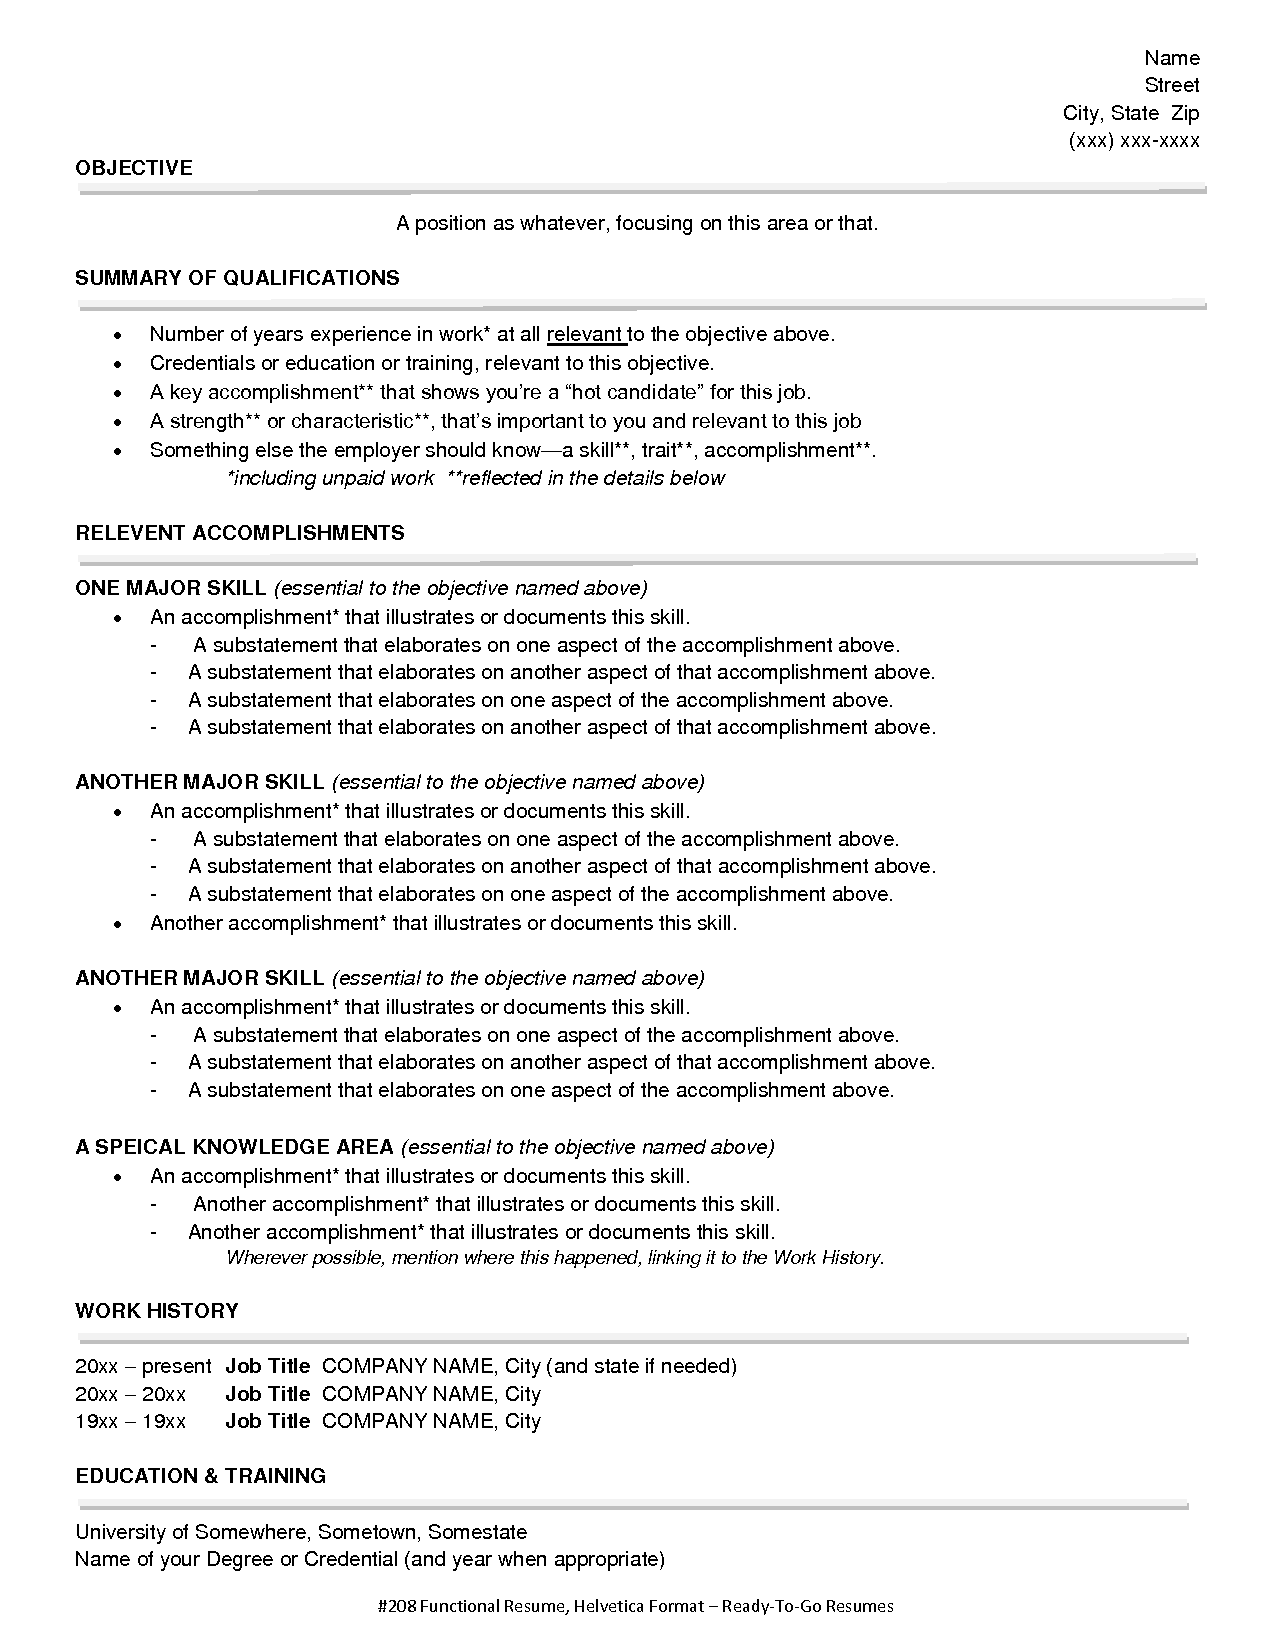 Functional Style Resume Sample | Functional Resume Style 1.doc ...